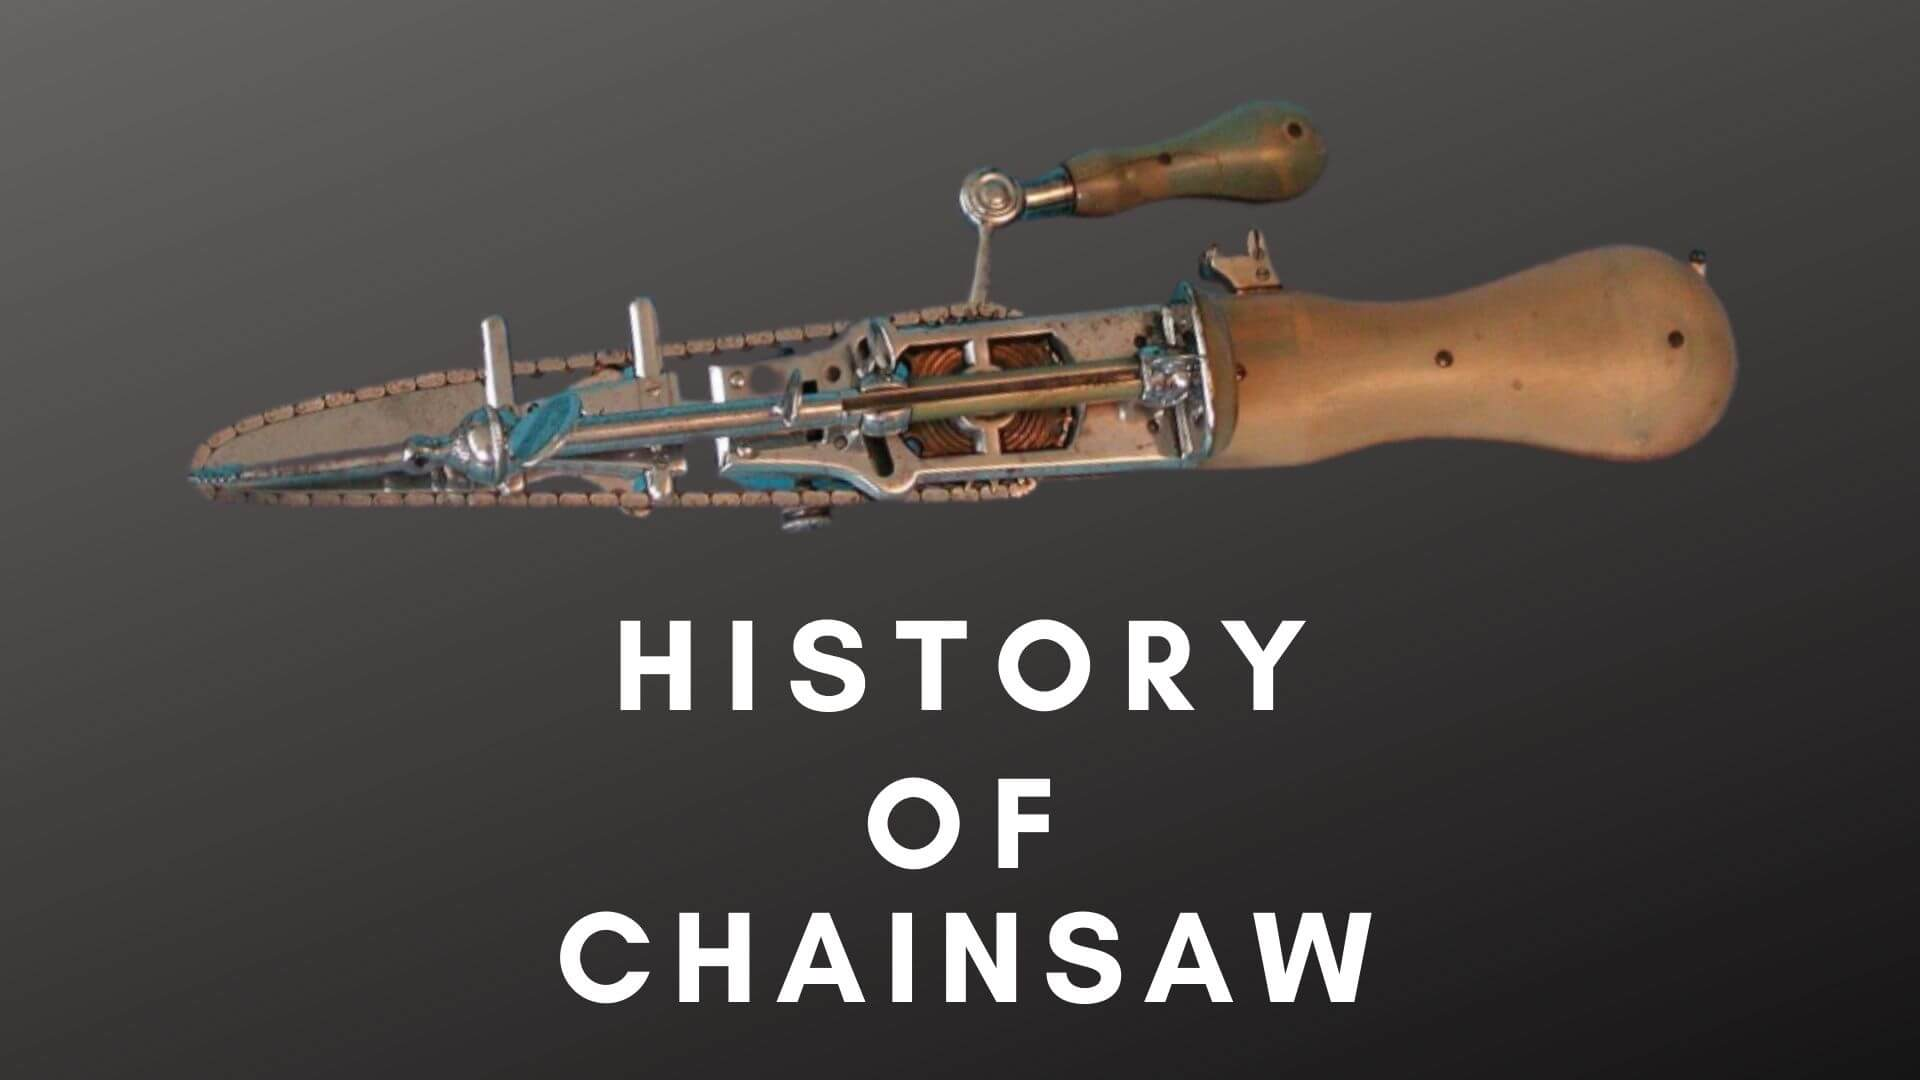 HISTORY OF CHAINSAW